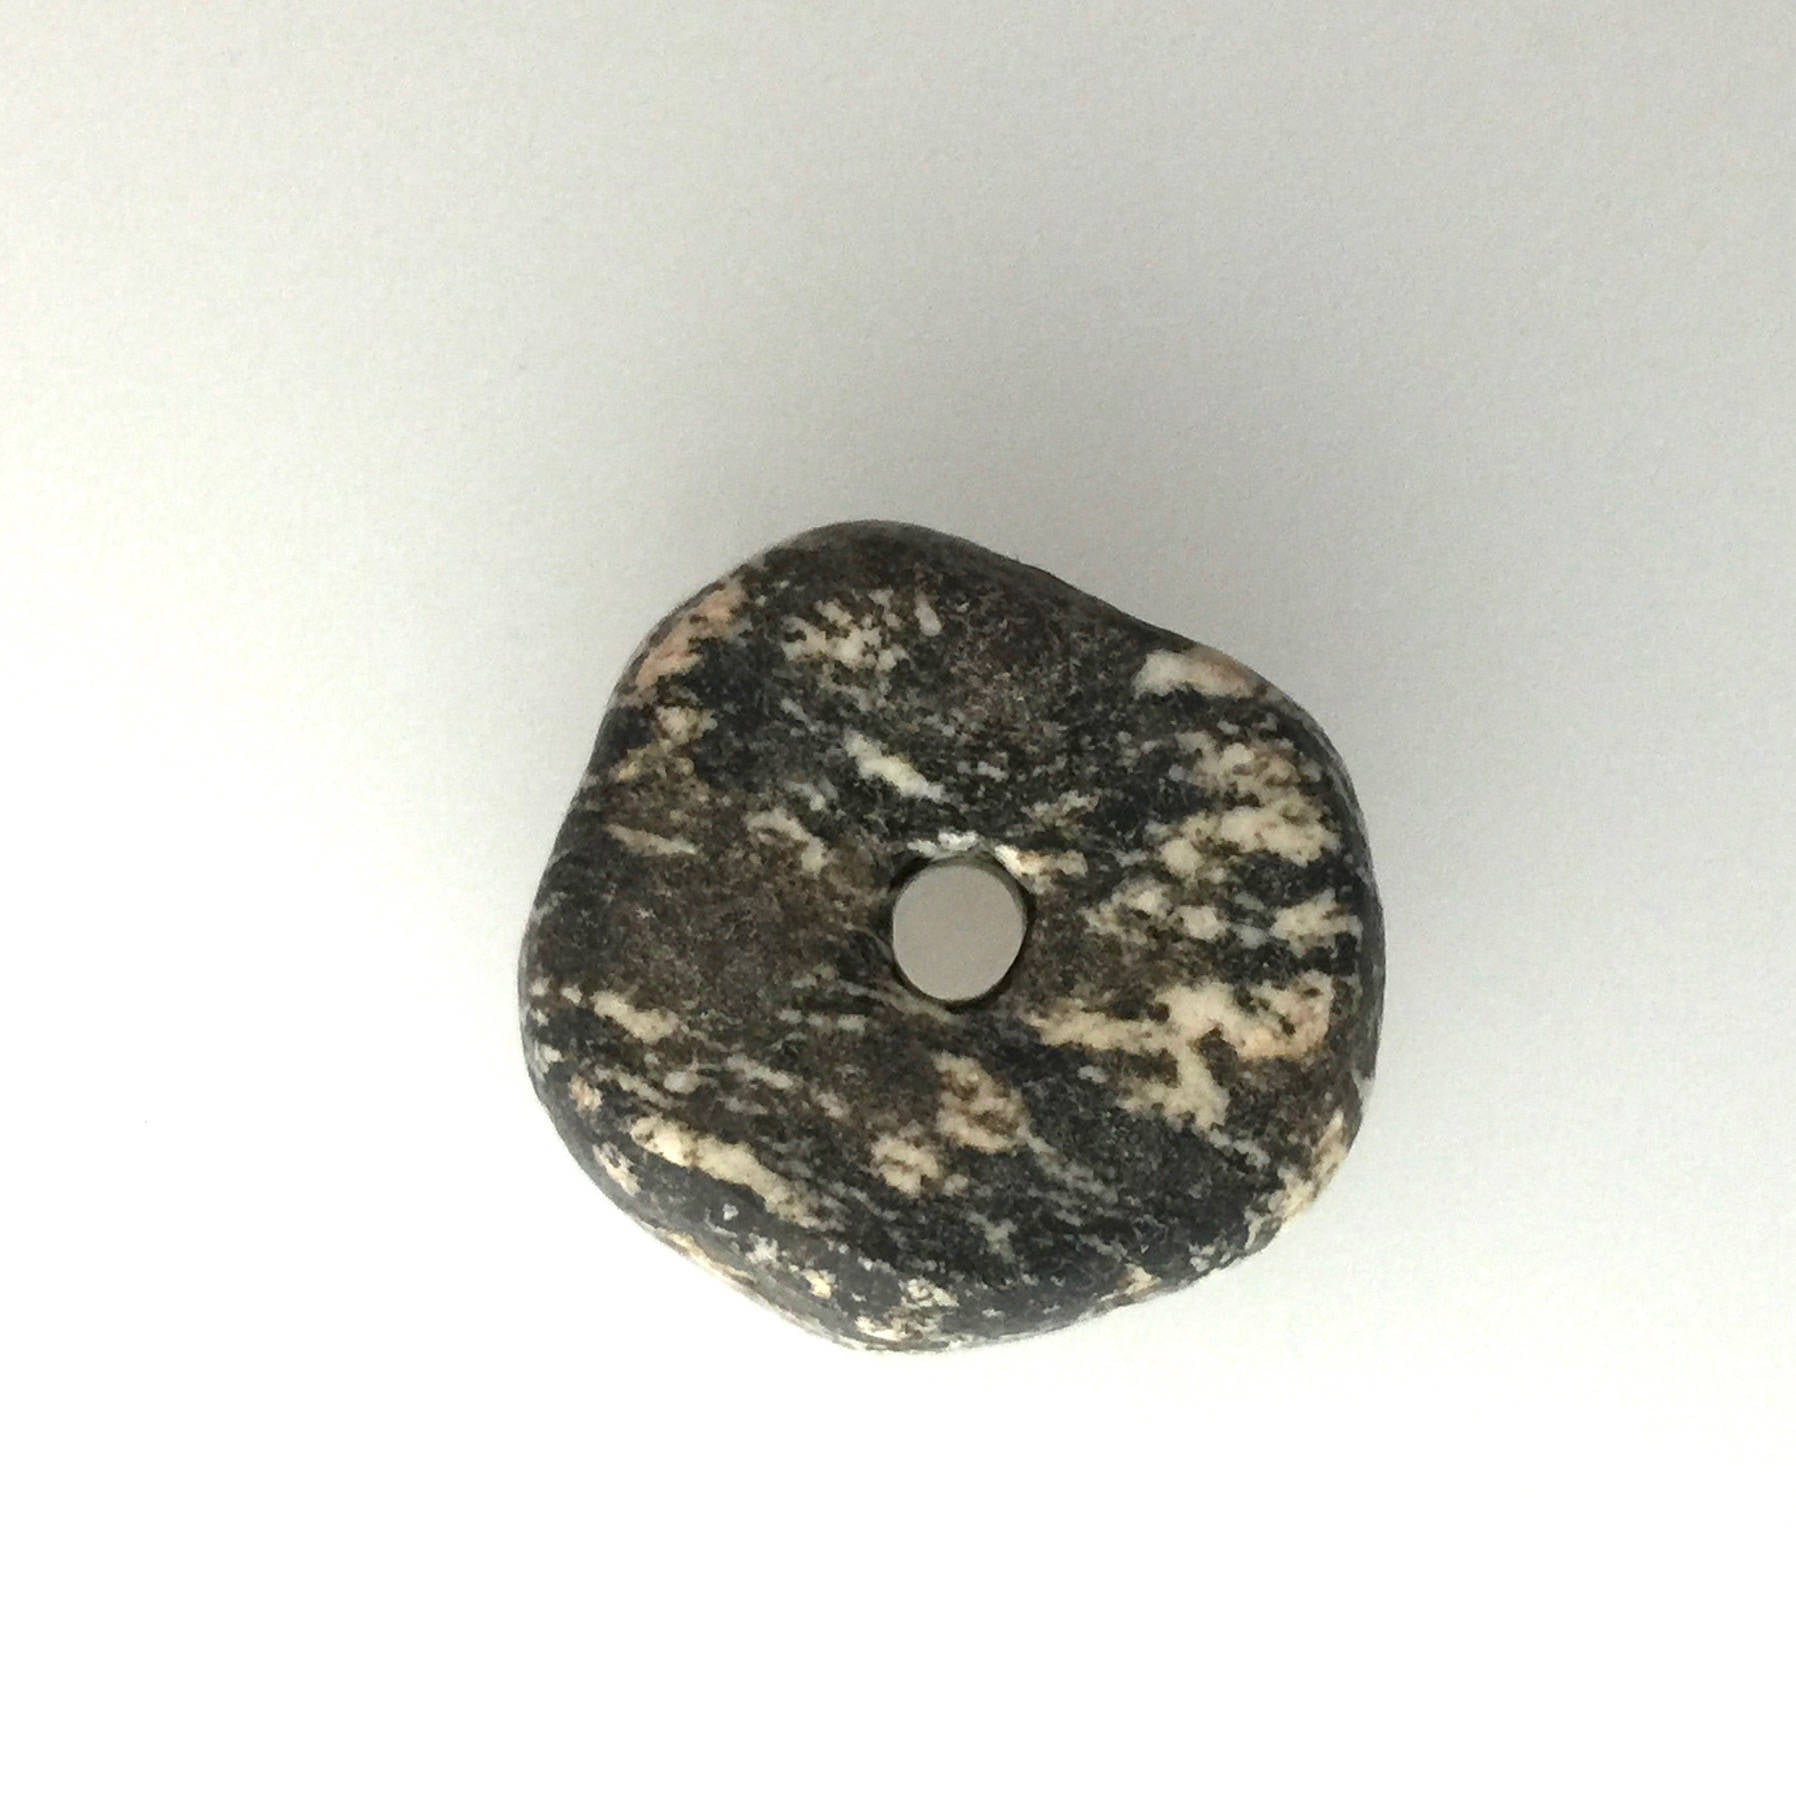 Granite Bead from Djenne